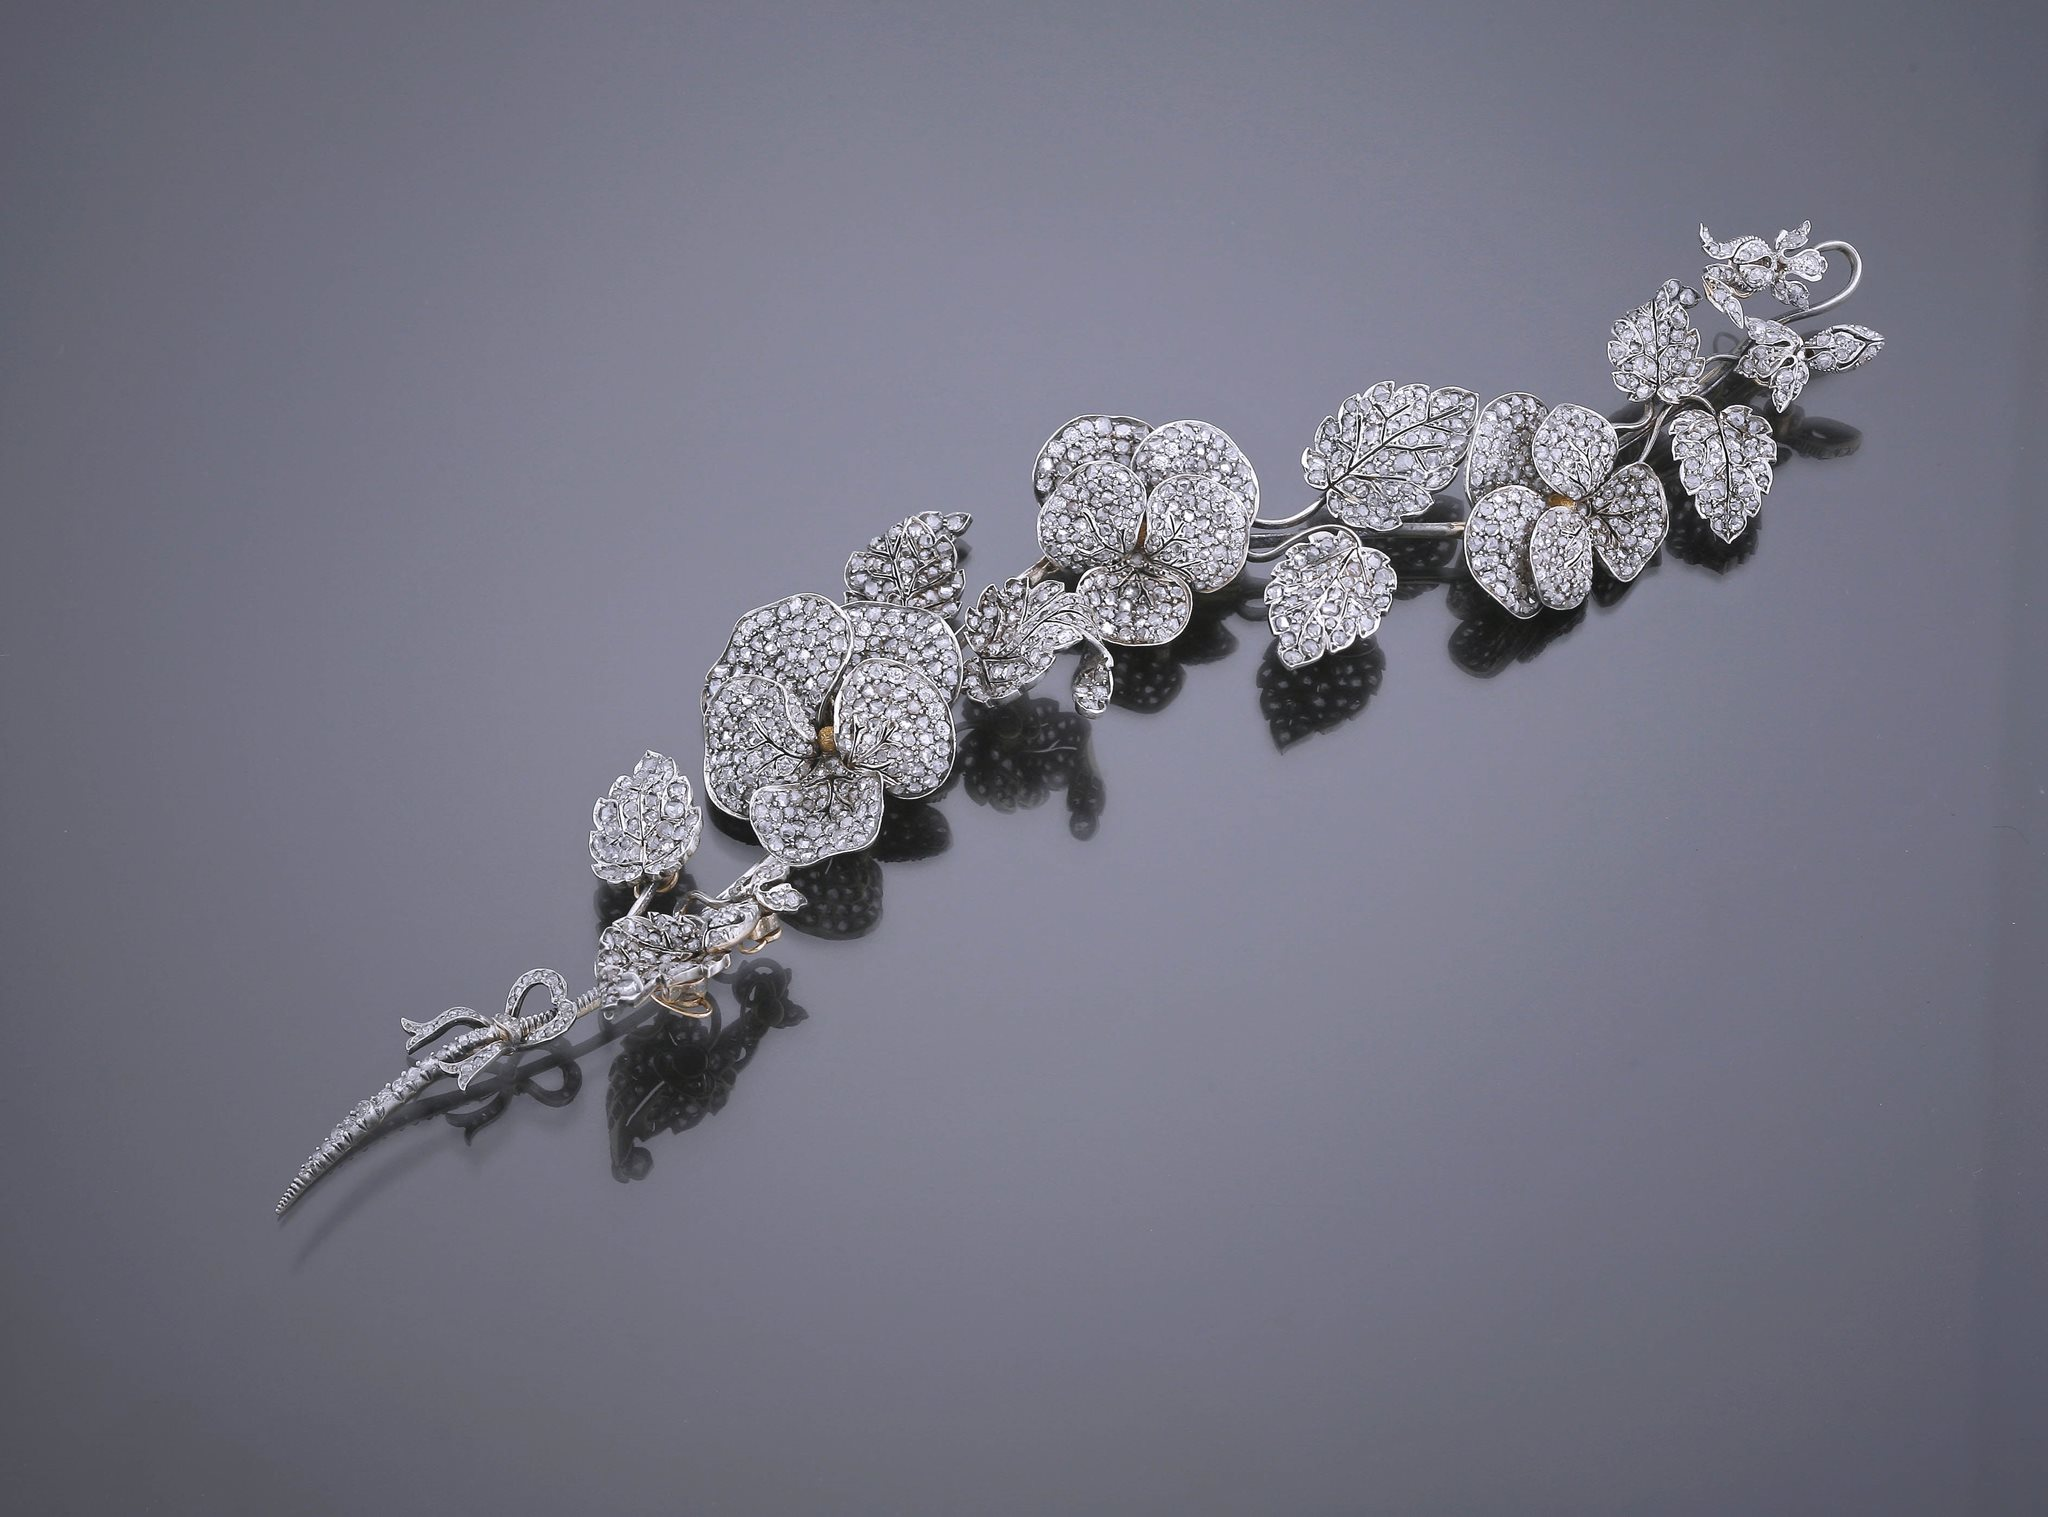 Antique Diamond Corsage Ornament - Part of the A. Aardewerk Exhibition